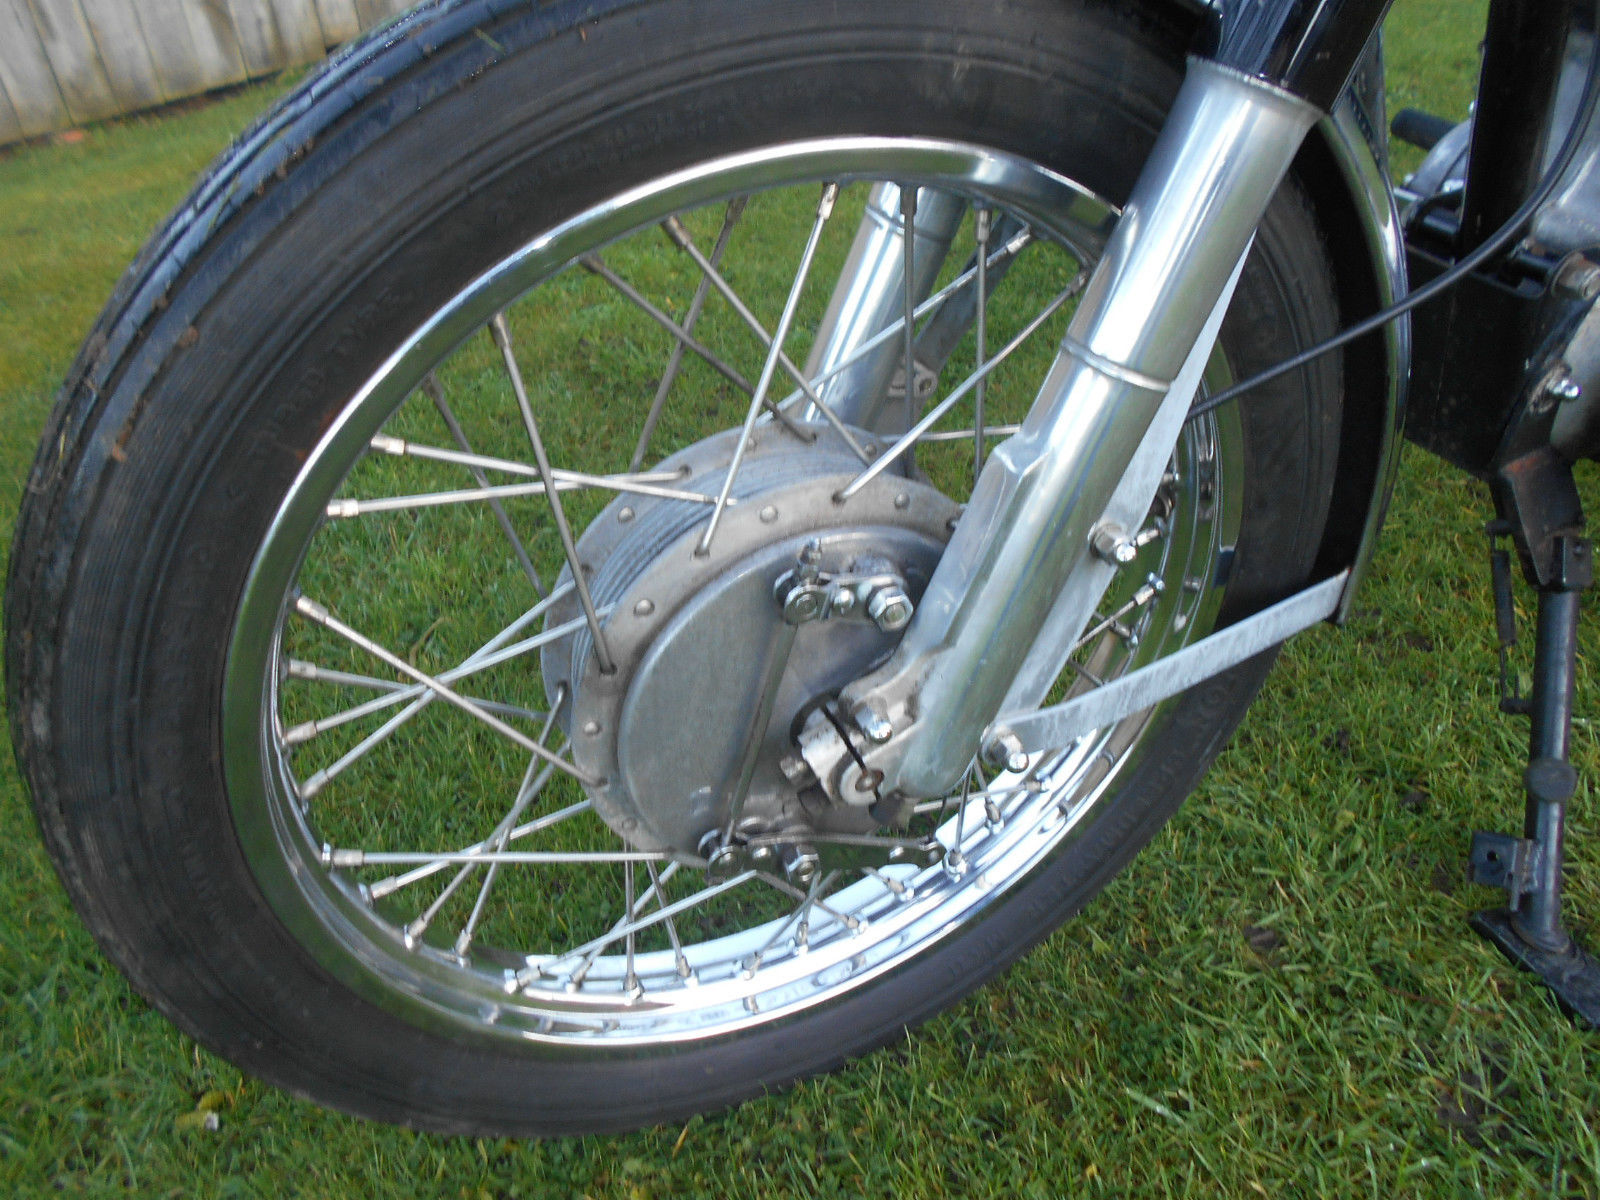 Royal Enfield 500 Bullet Cafe Racer Alloy Tank Goldie Pipe Looks